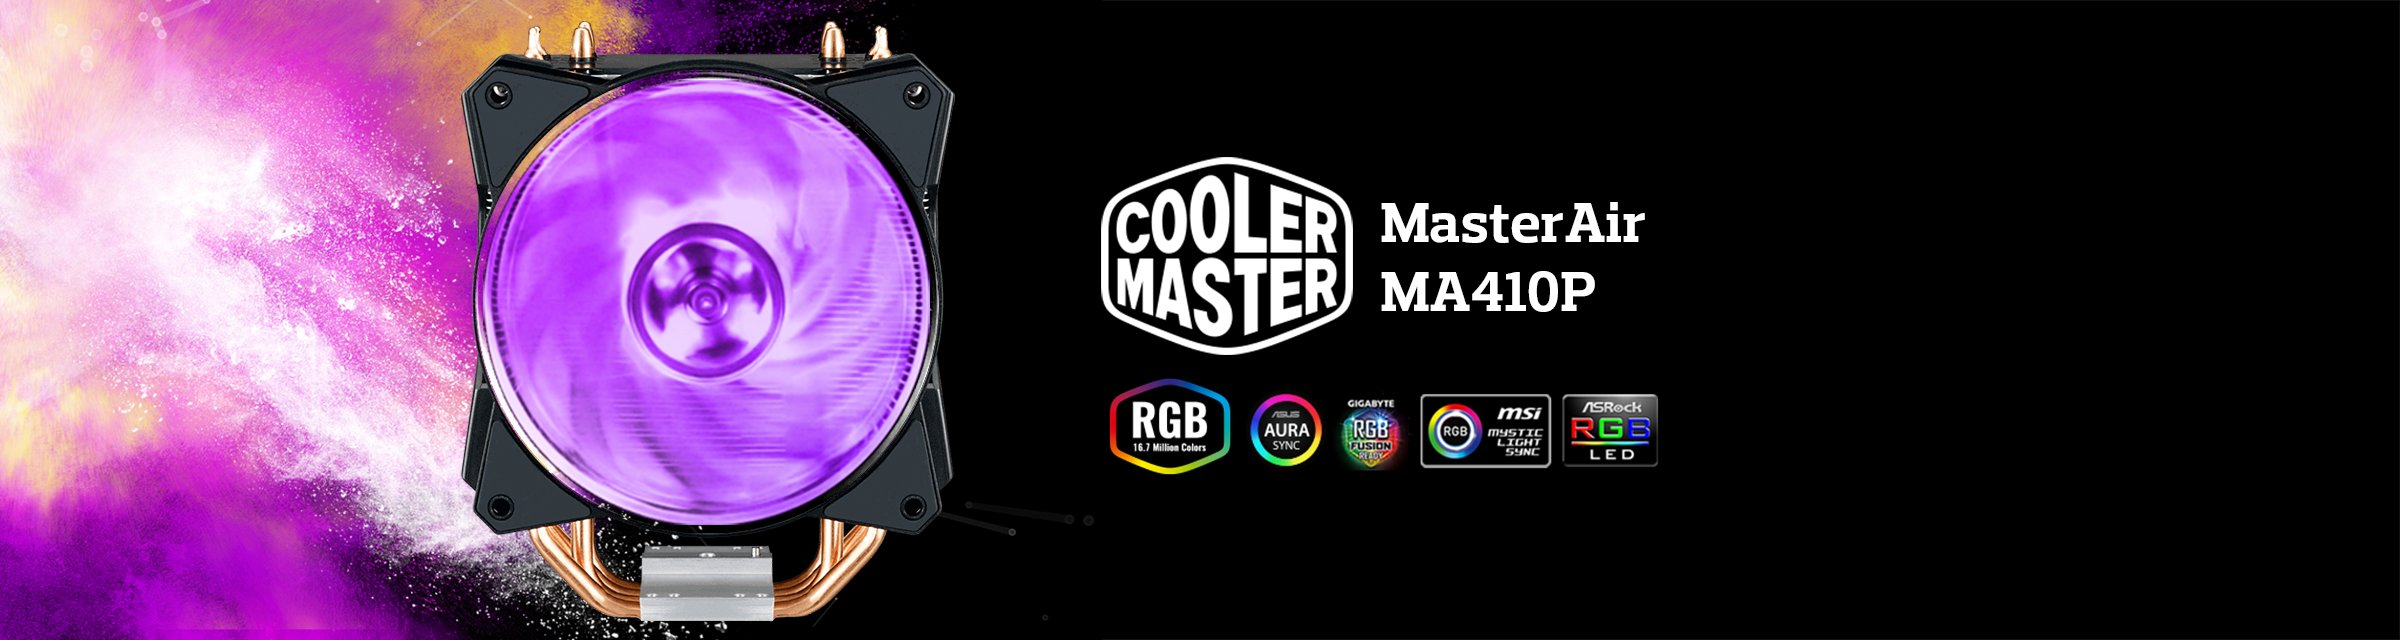 Cooler Master MasterAir MA410P CPU Air Cooler